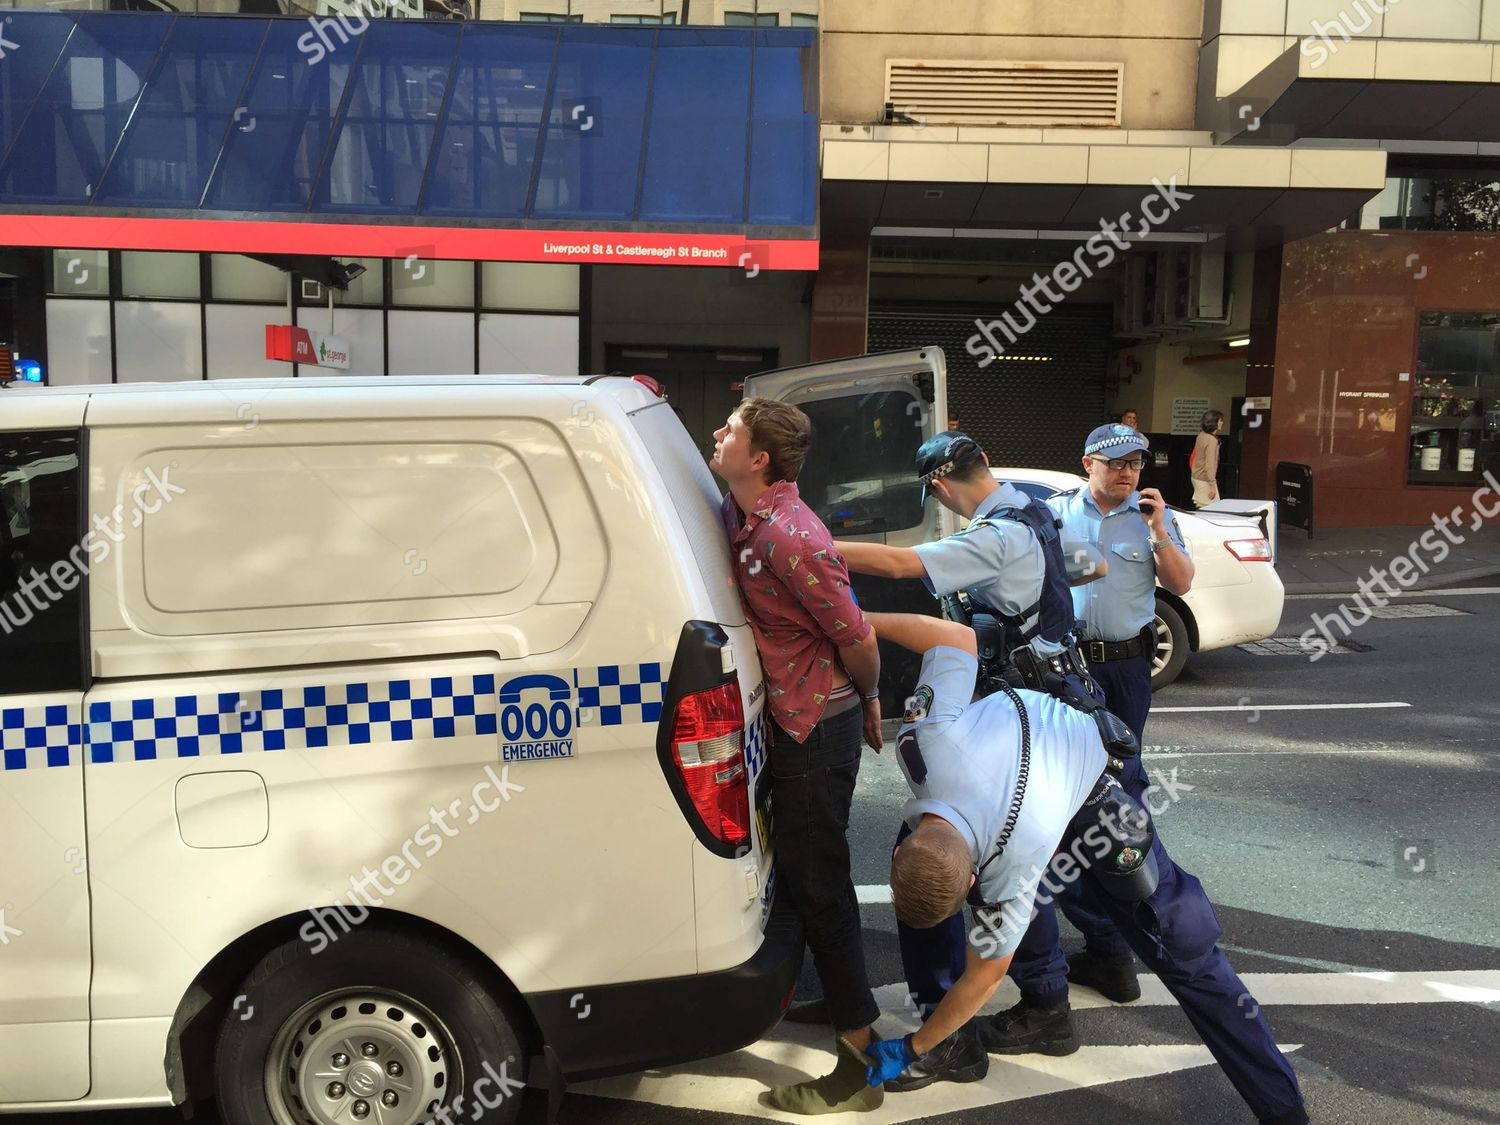 Man Taken Away by Police After Incident ...